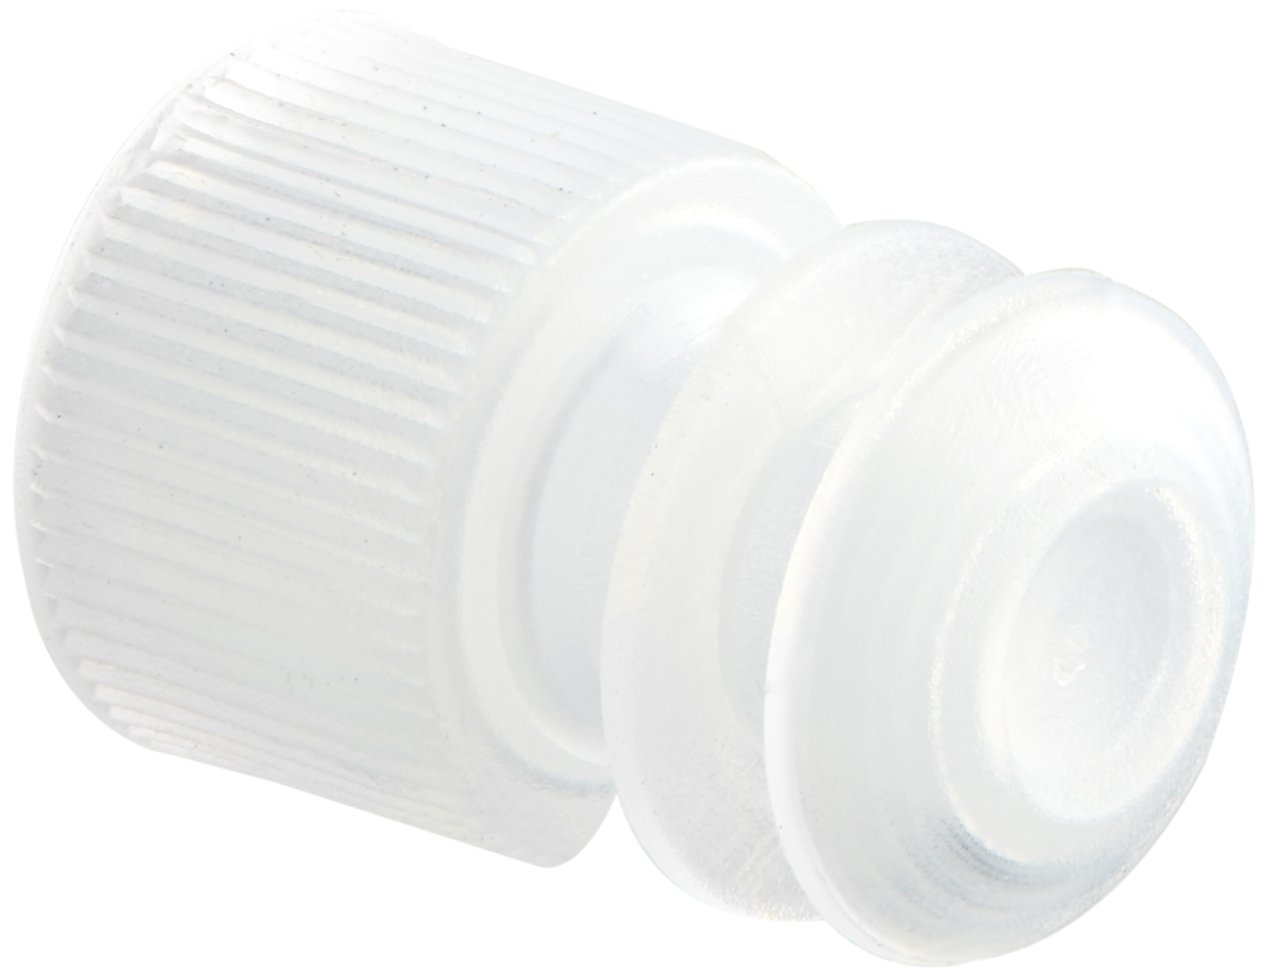 Globe Scientific 118127C Polyethylene Flange Plug Cap for Test Tubes, 12mm Size, Clear (Pack of 1000) by Globe Scientific